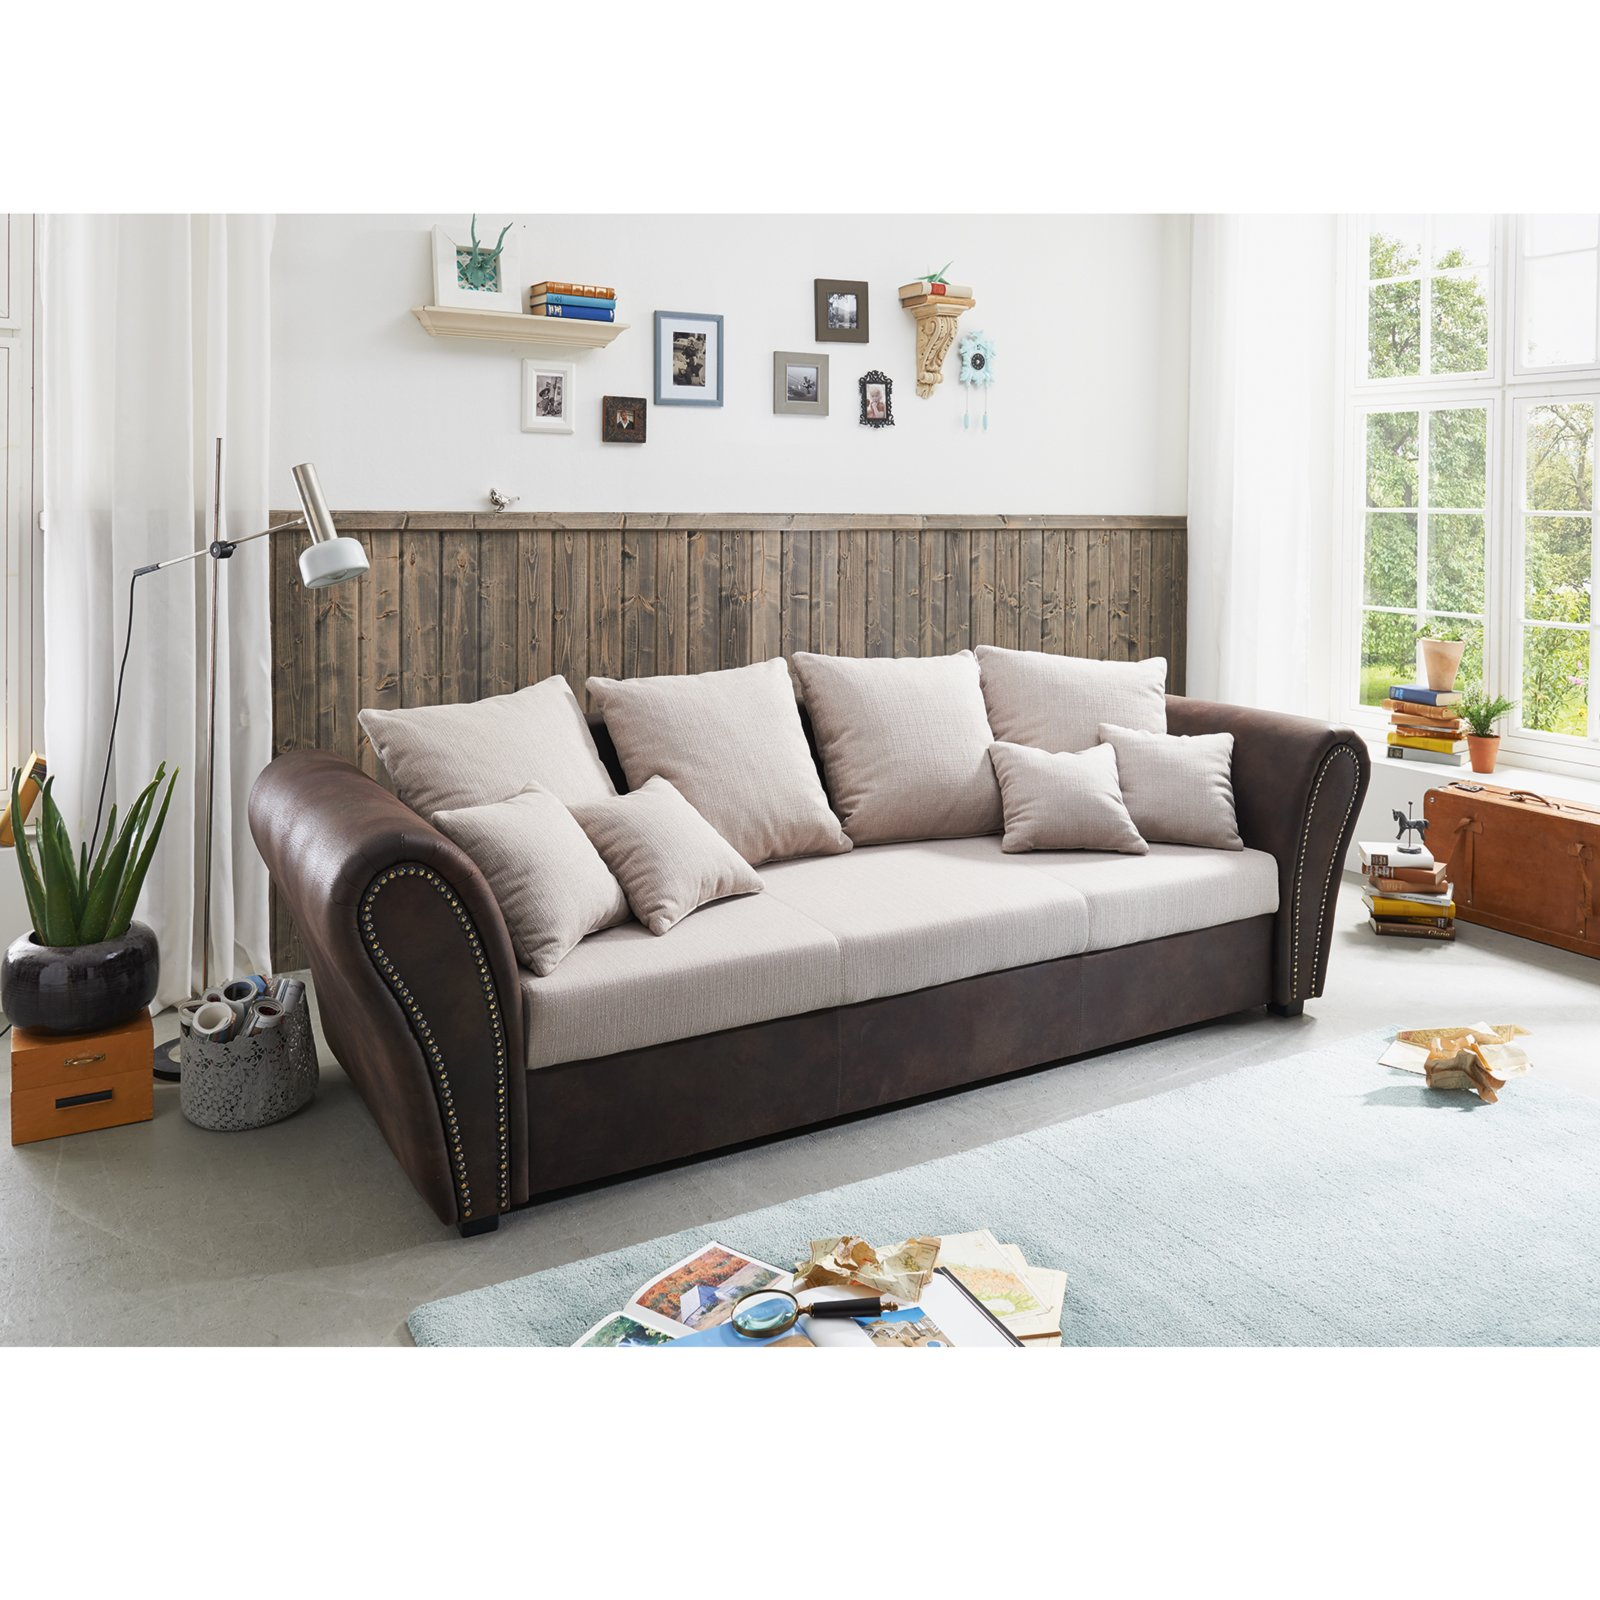 big sofa beige braun mit kissen ebay. Black Bedroom Furniture Sets. Home Design Ideas